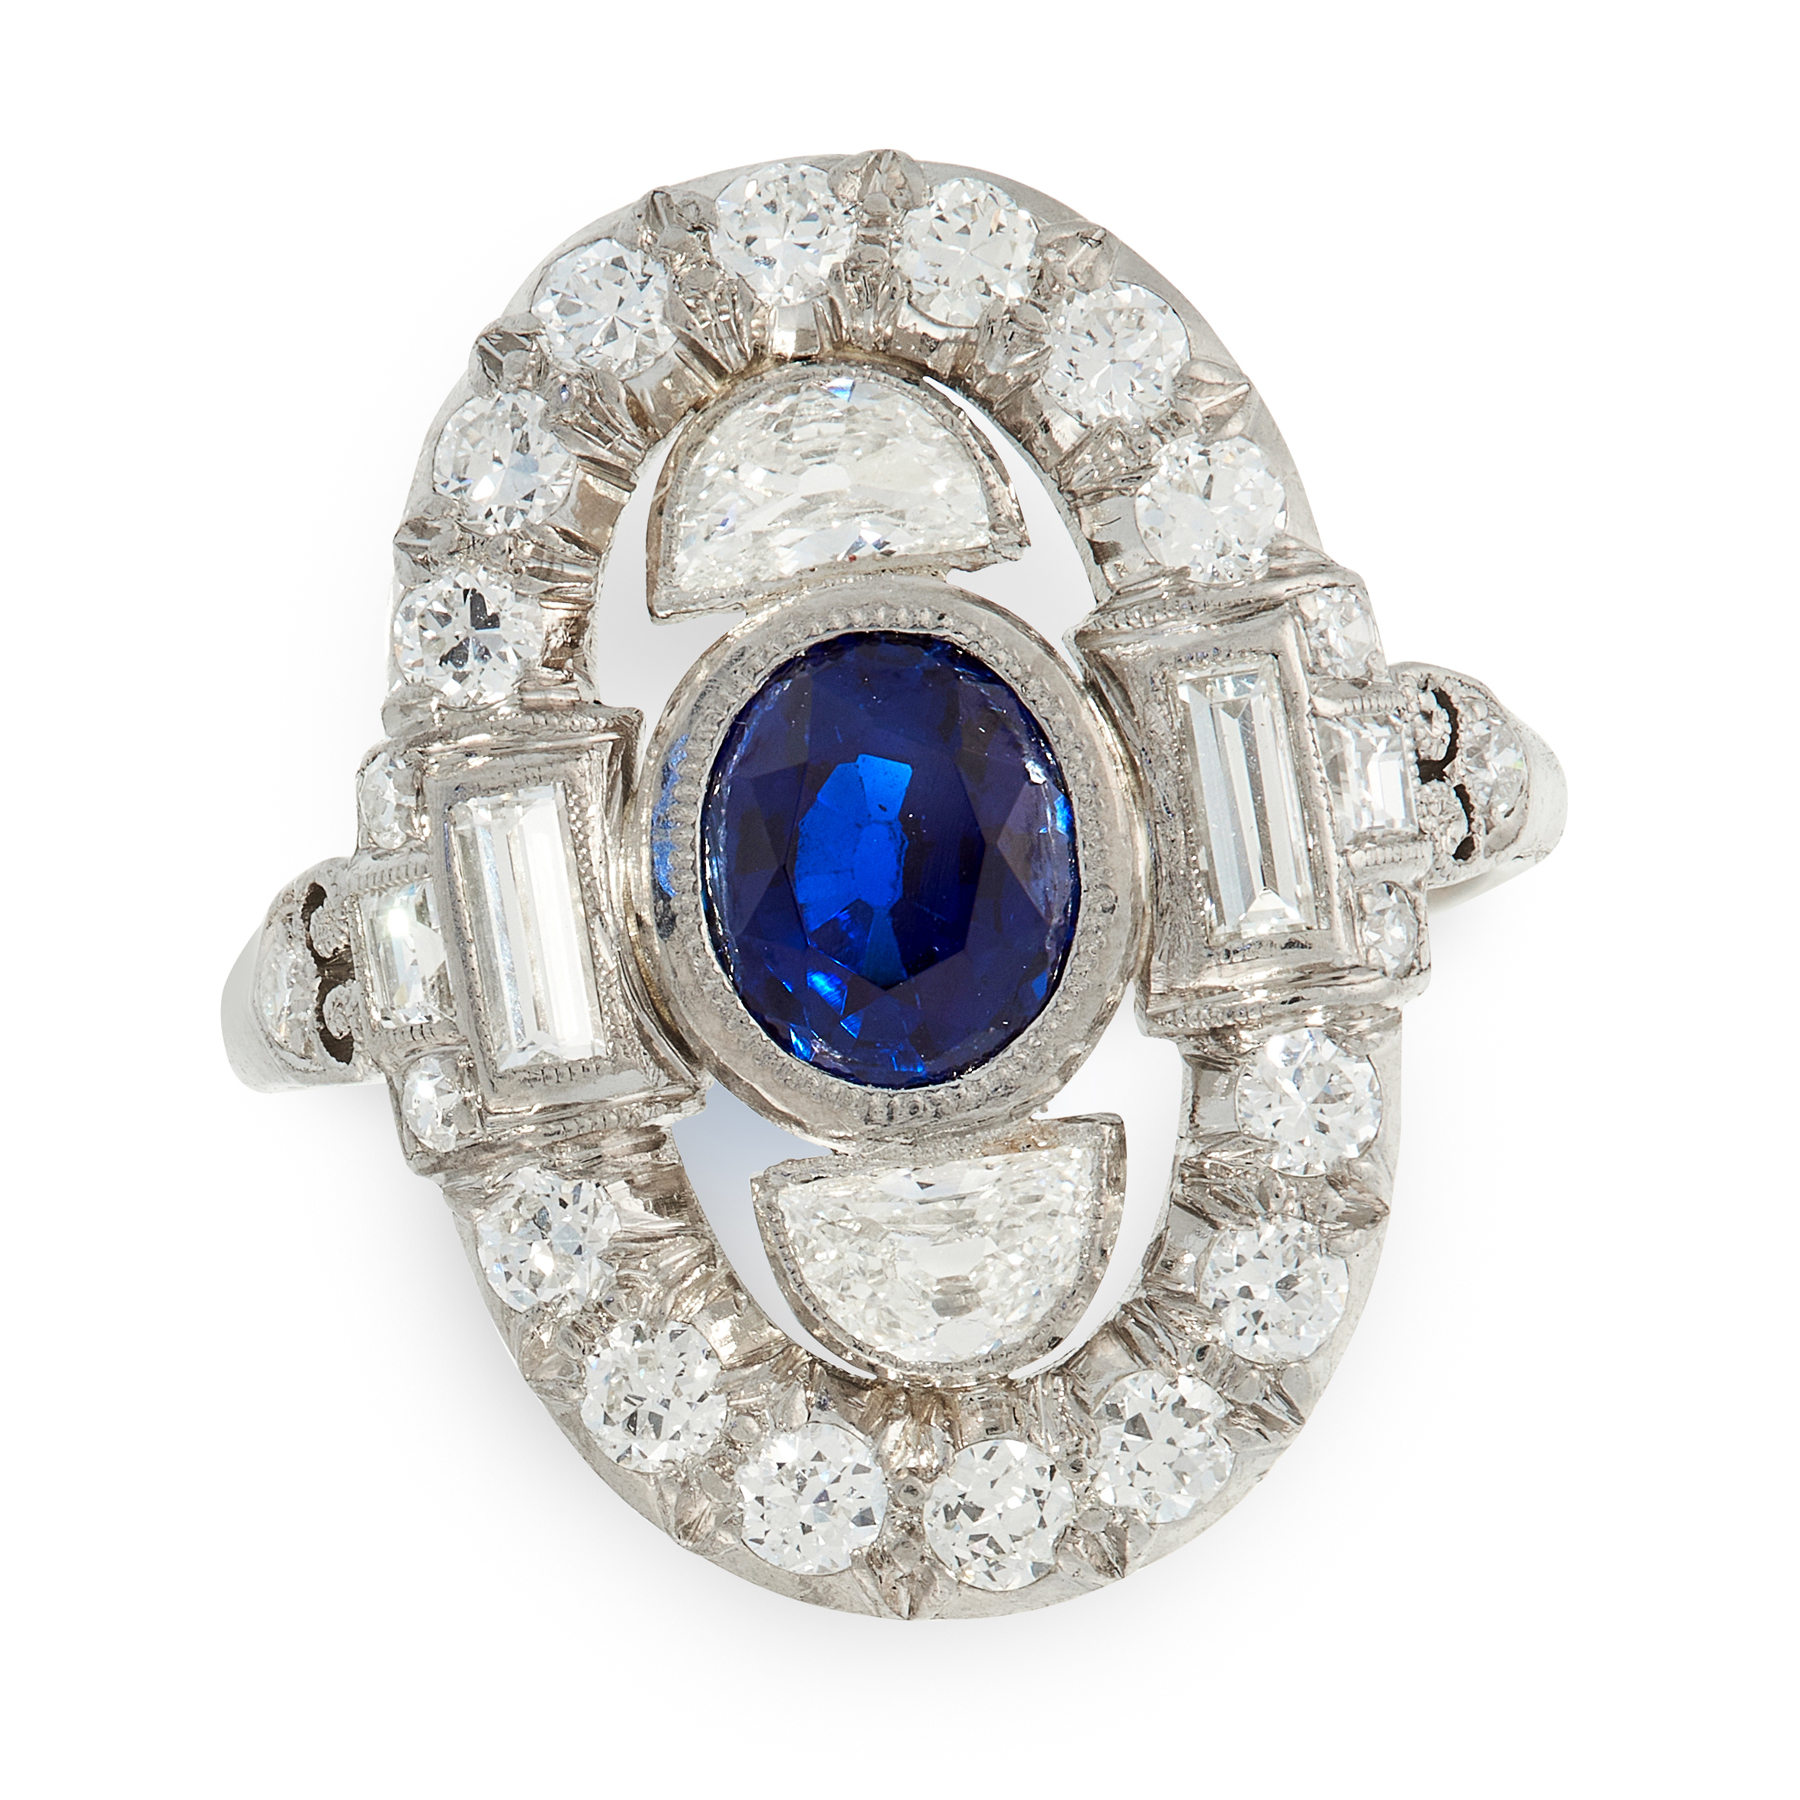 A SAPPHIRE AND DIAMOND RING, CIRCA 1950 POSSIBLY BY H STERN in platinum, set with an oval cut - Image 2 of 2